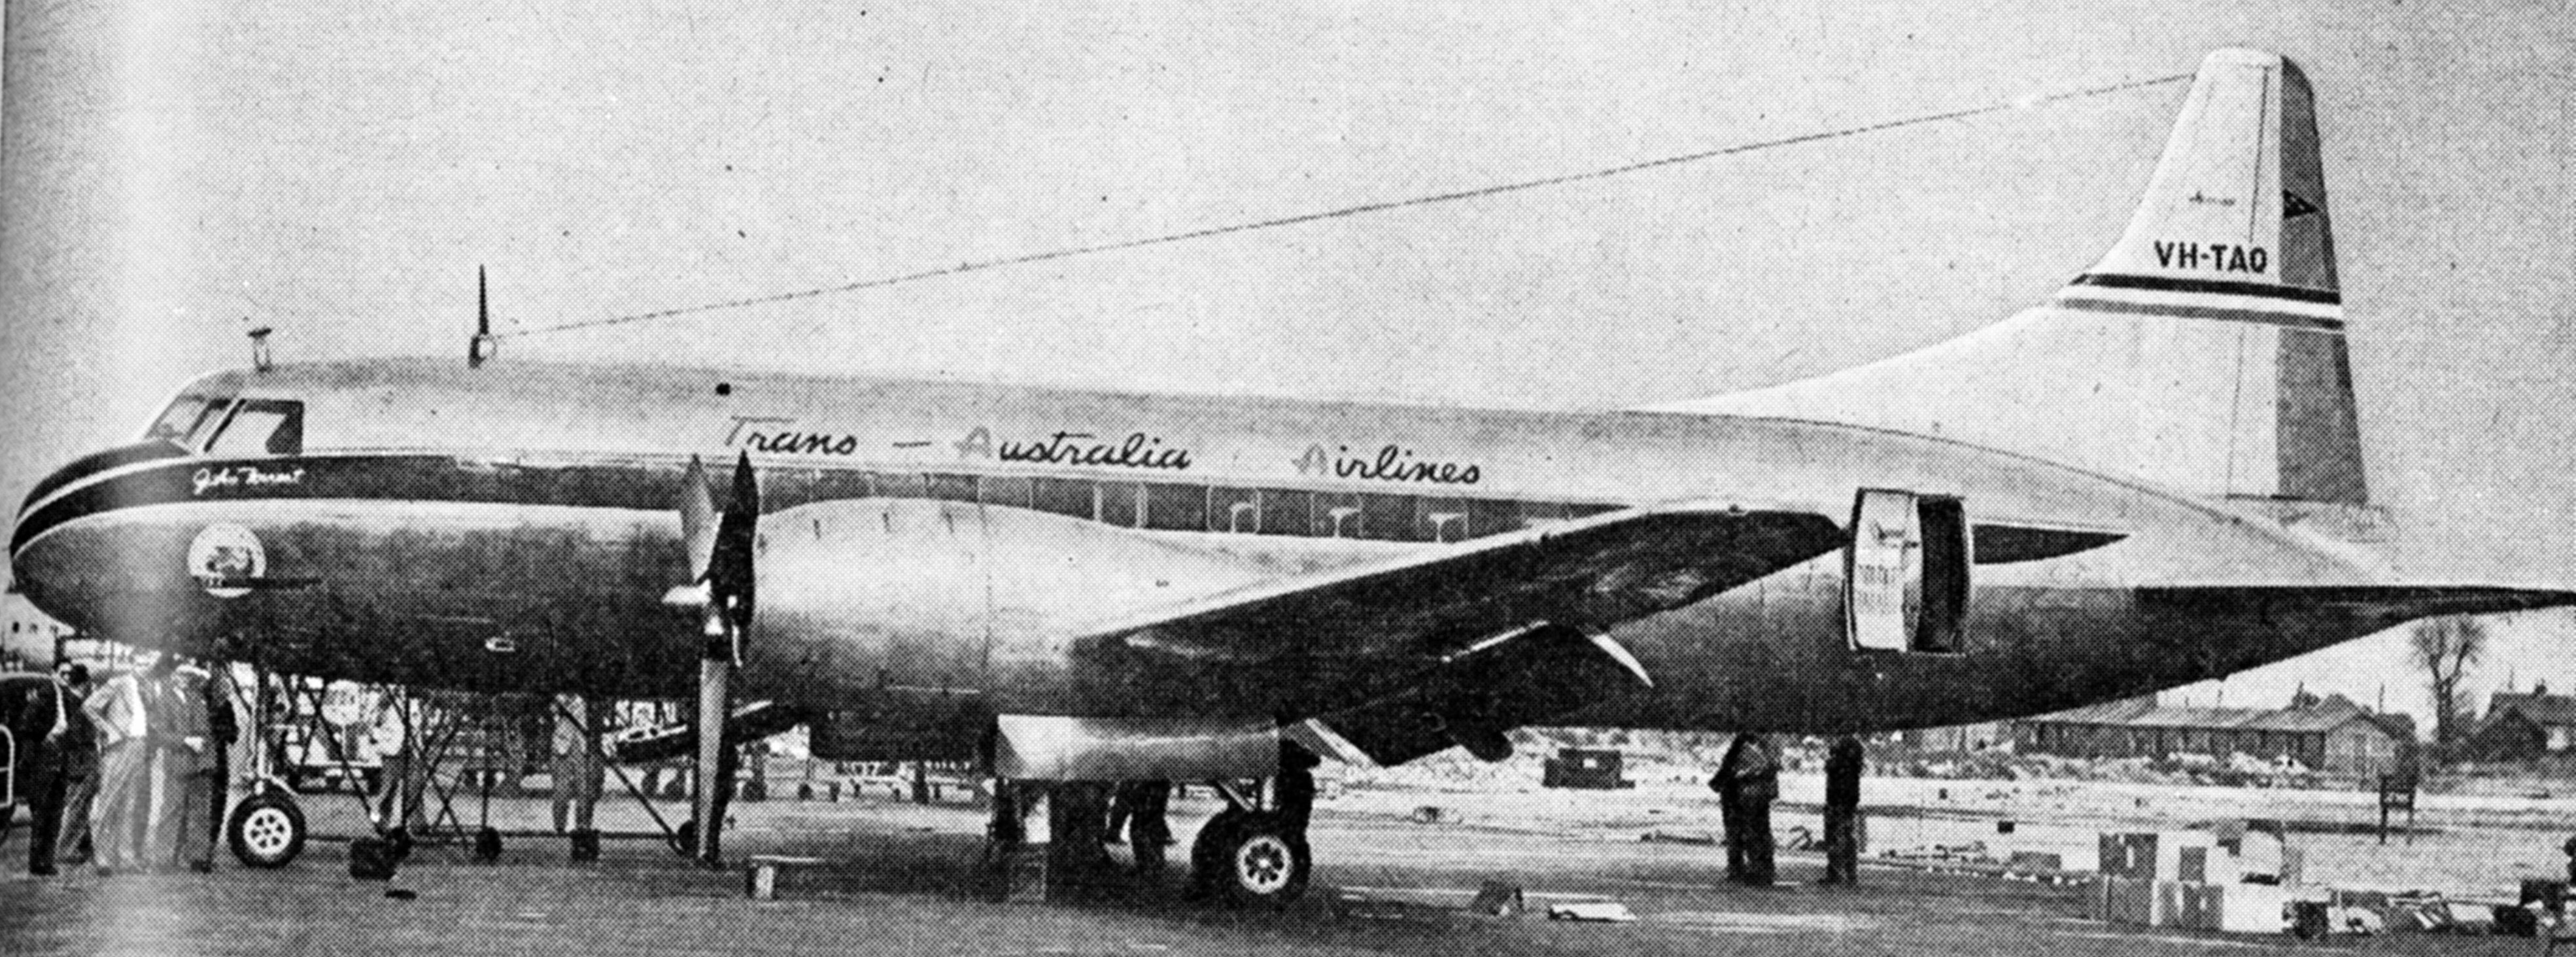 """FIRST TIME IN BRITAIN. – On August 28 the first Convair-liner to be seen in this country arrived at Heathrow. It belongs to Trans-Australia Airlines, and was on delivery from San Diego, California to Melbourne. All """"Aeroplane"""" photographs"""